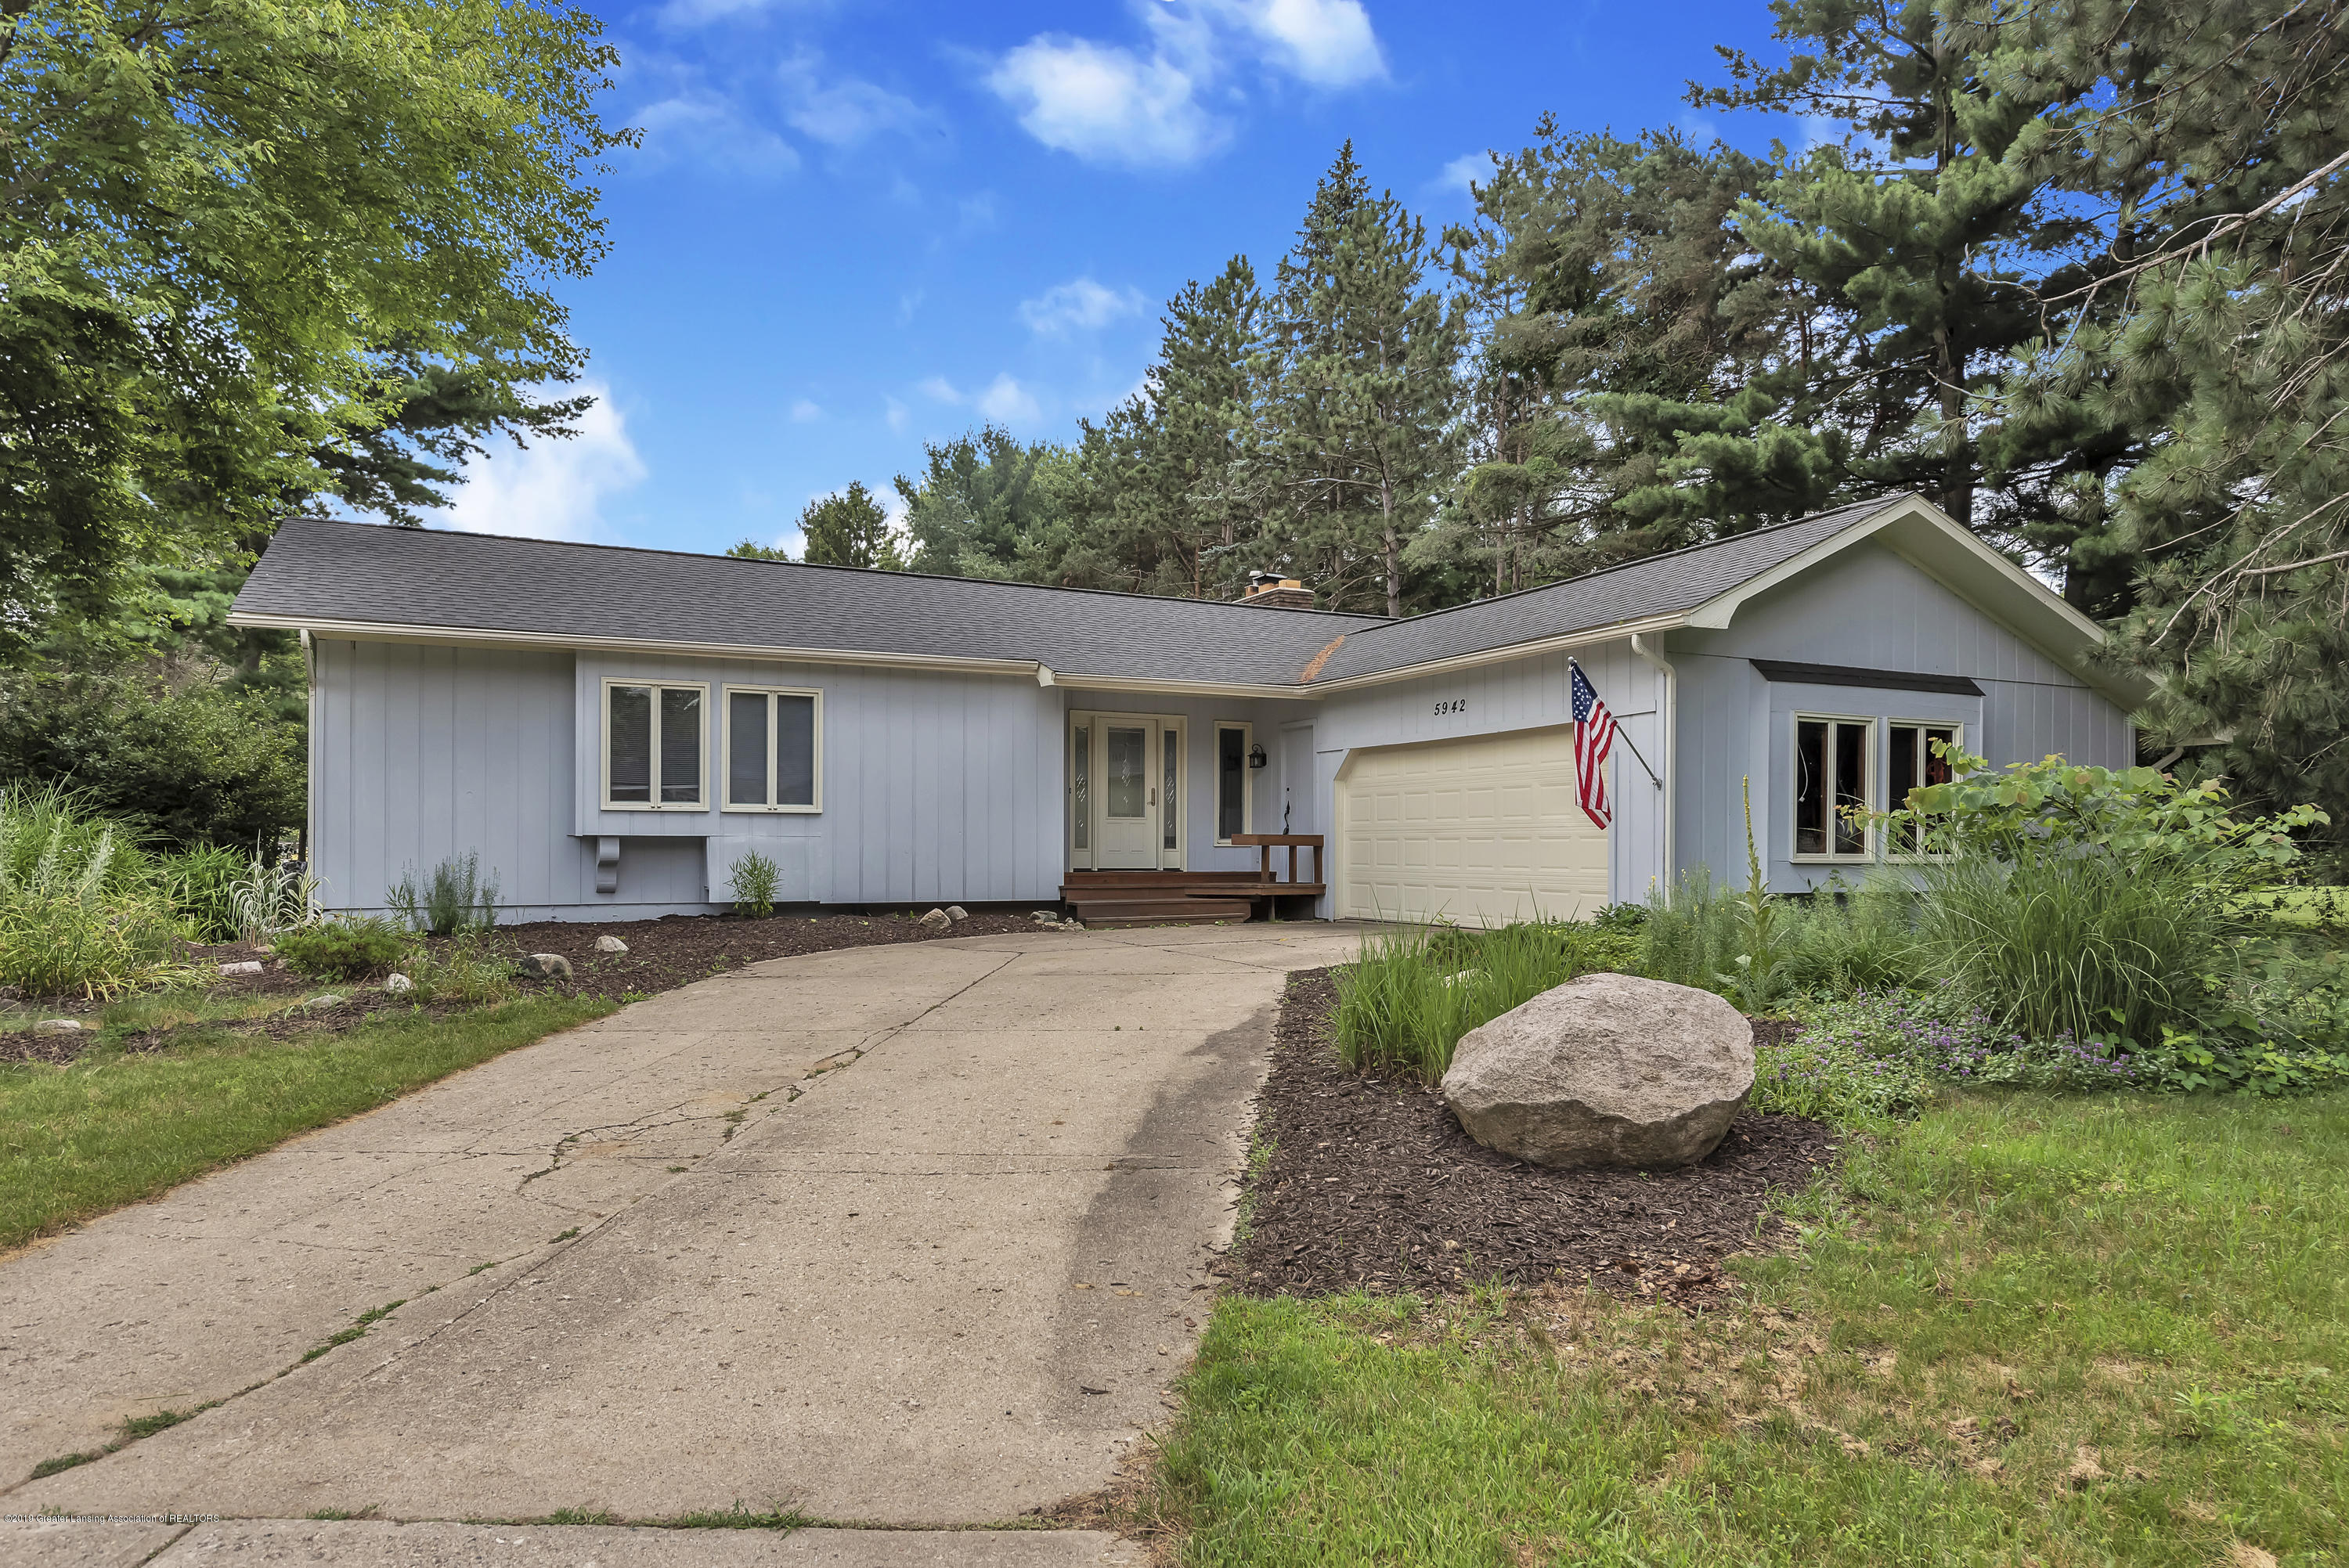 5942 W Sleepy Hollow Ln - 5942-W-Sleepy-Hollow-Ln-East-Lansing-MI- - 3